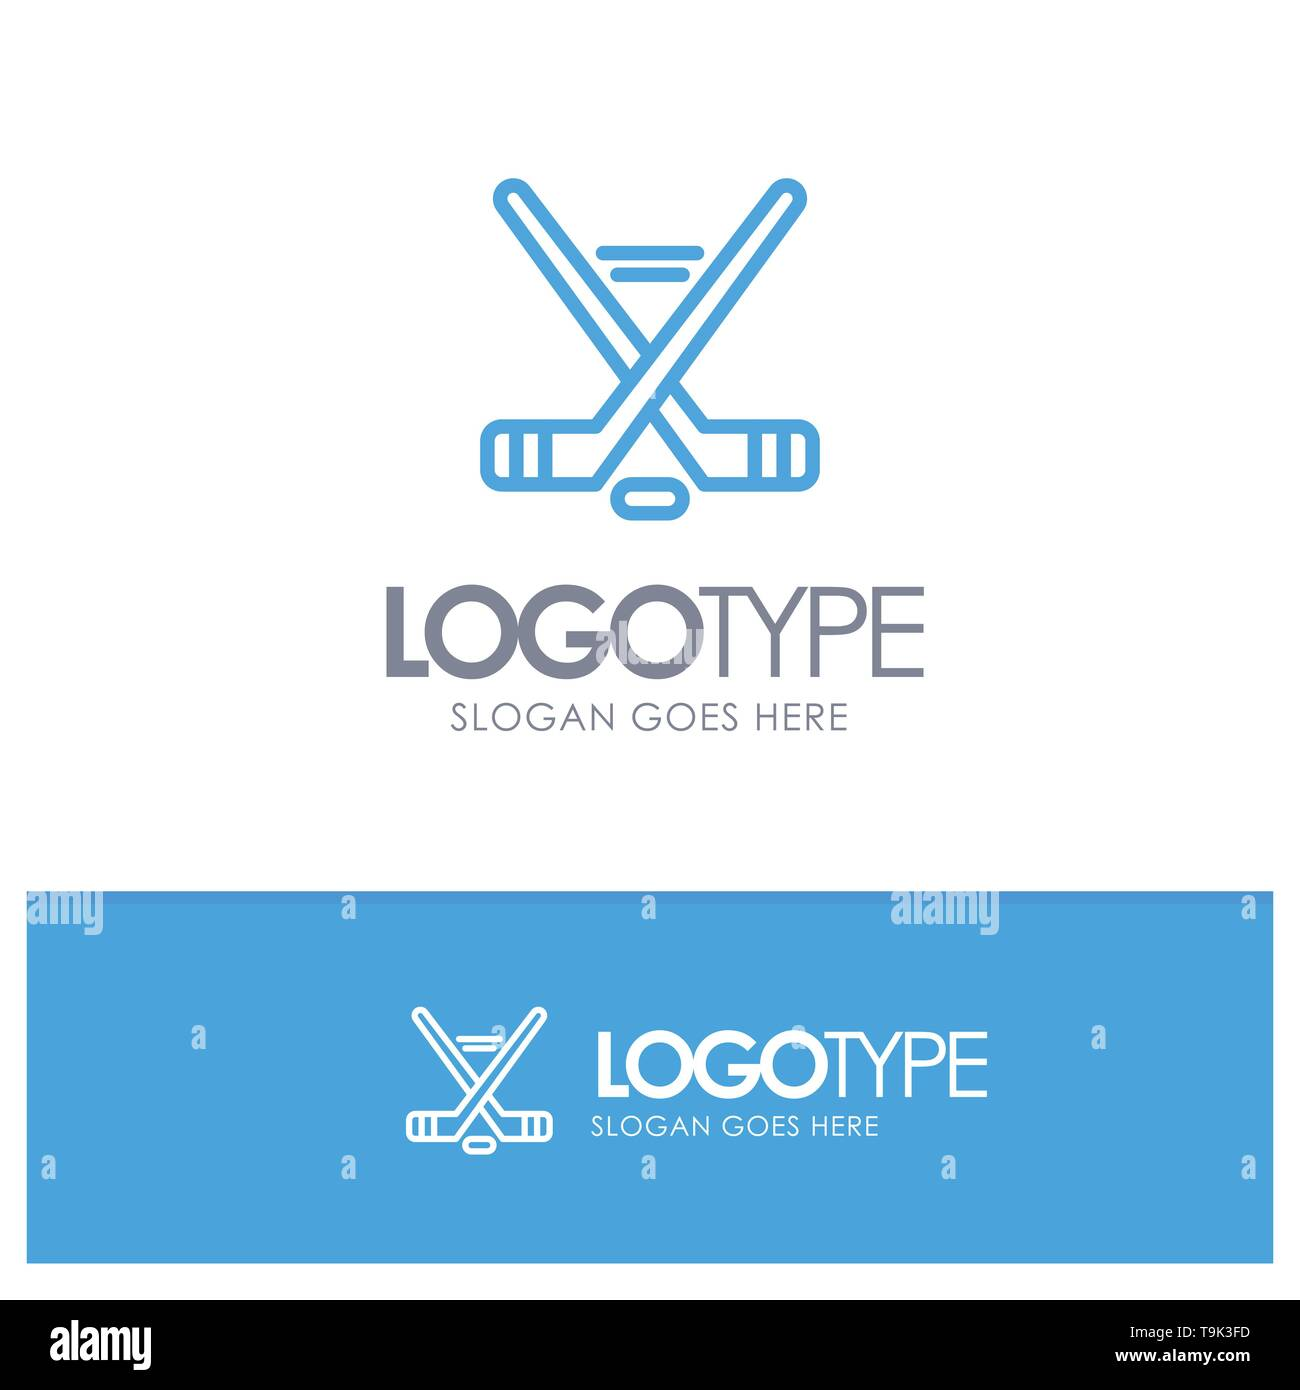 Hokey, Ice Sport, Sport, American Blue Outline Logo Place for Tagline - Stock Image